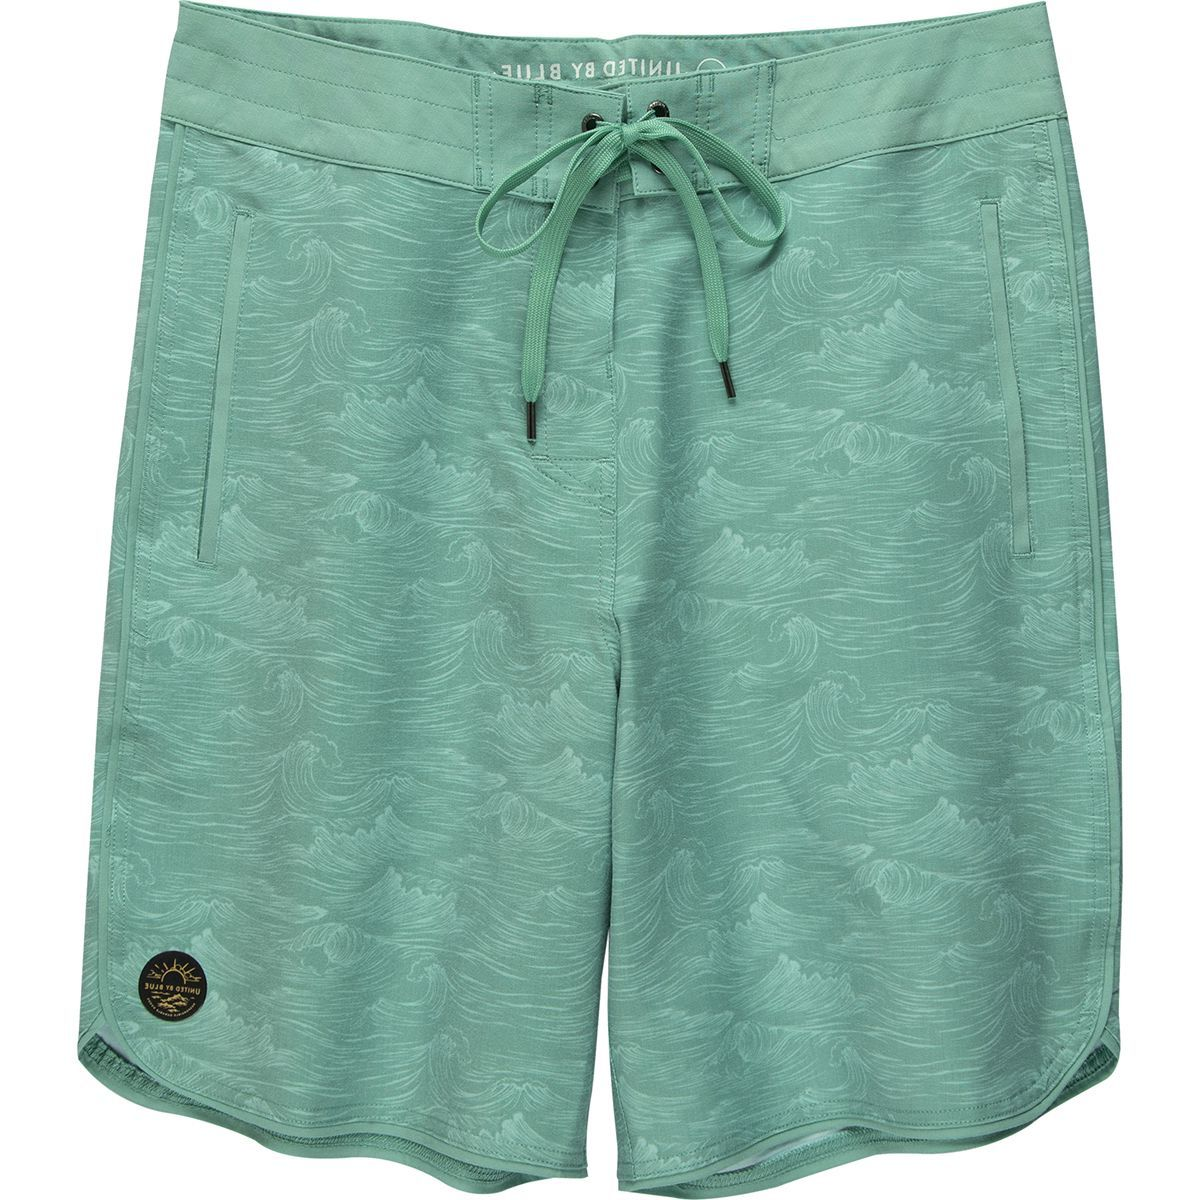 United by Blue Swell Scallop Board Short - Men's